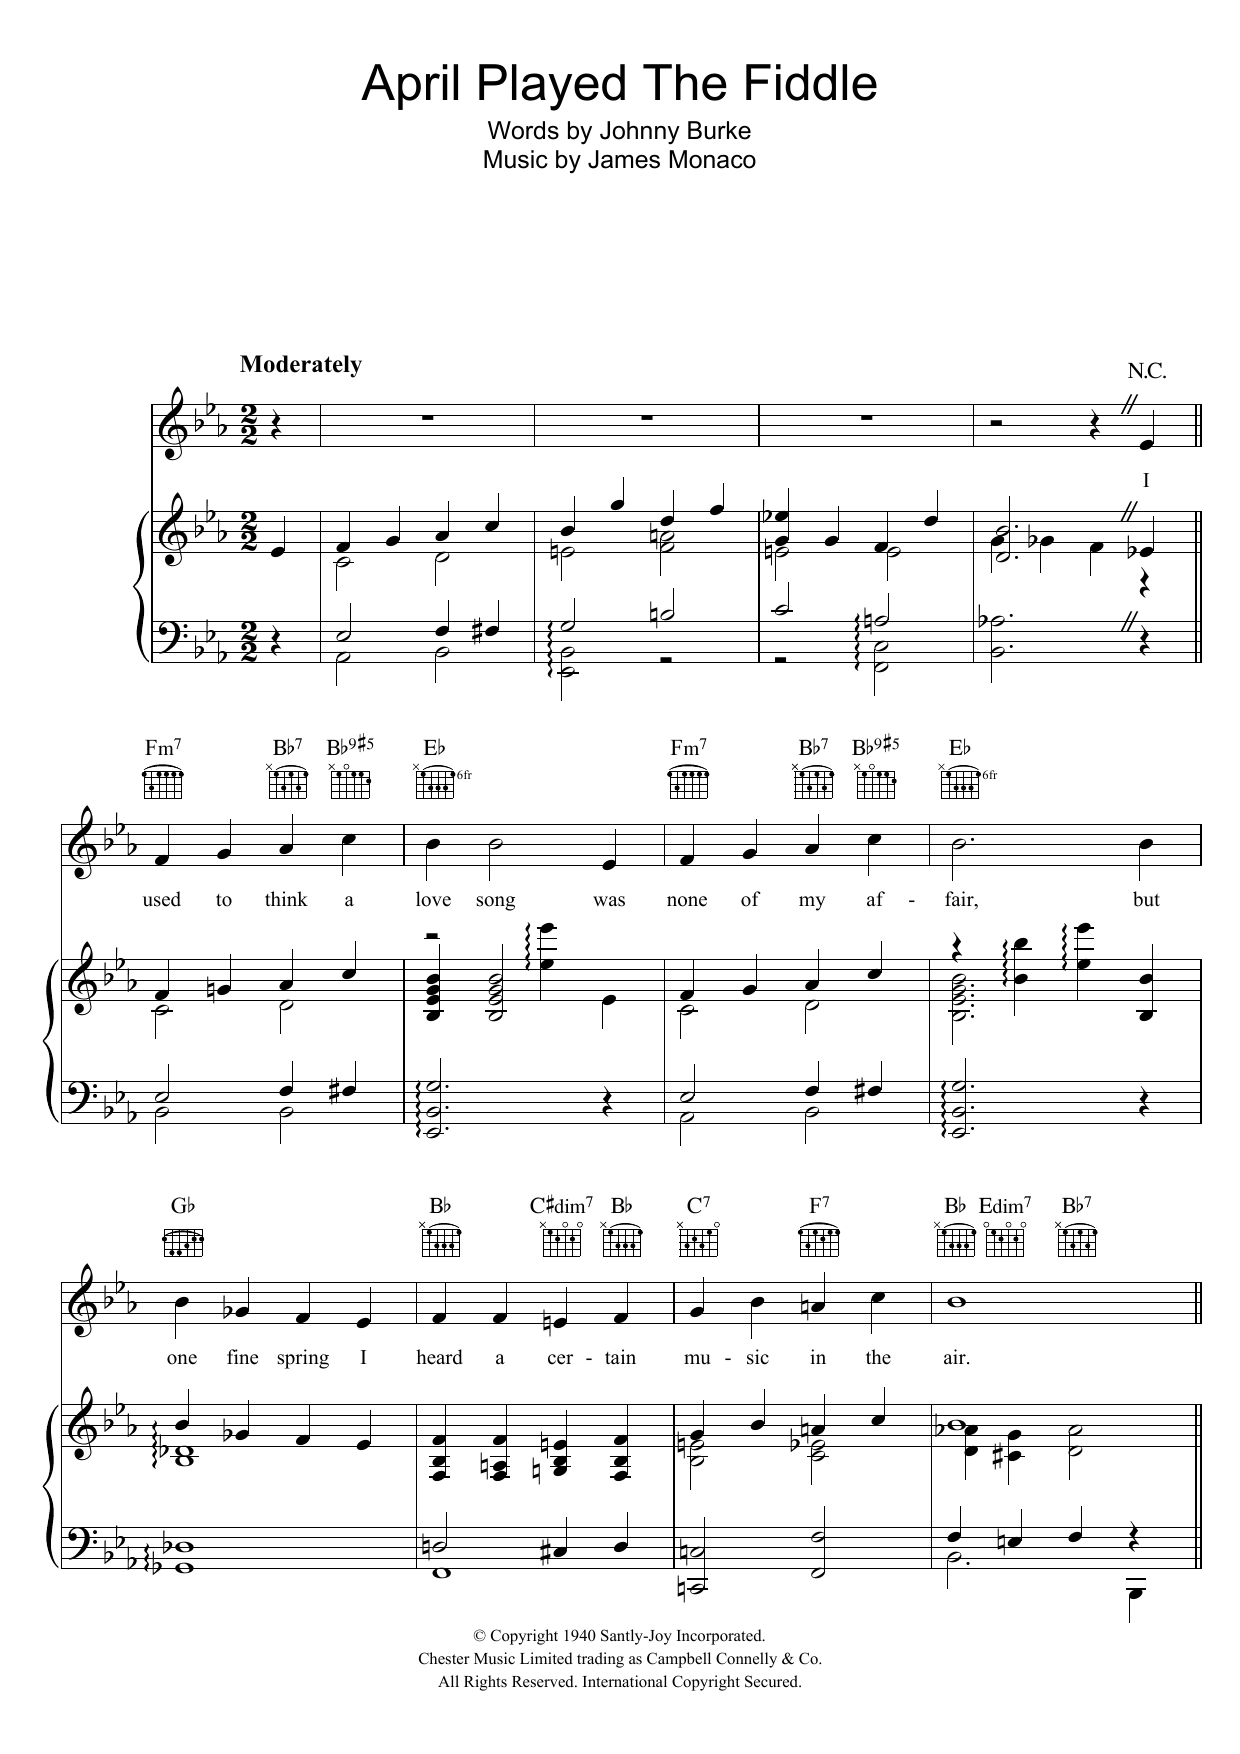 April Played The Fiddle Sheet Music